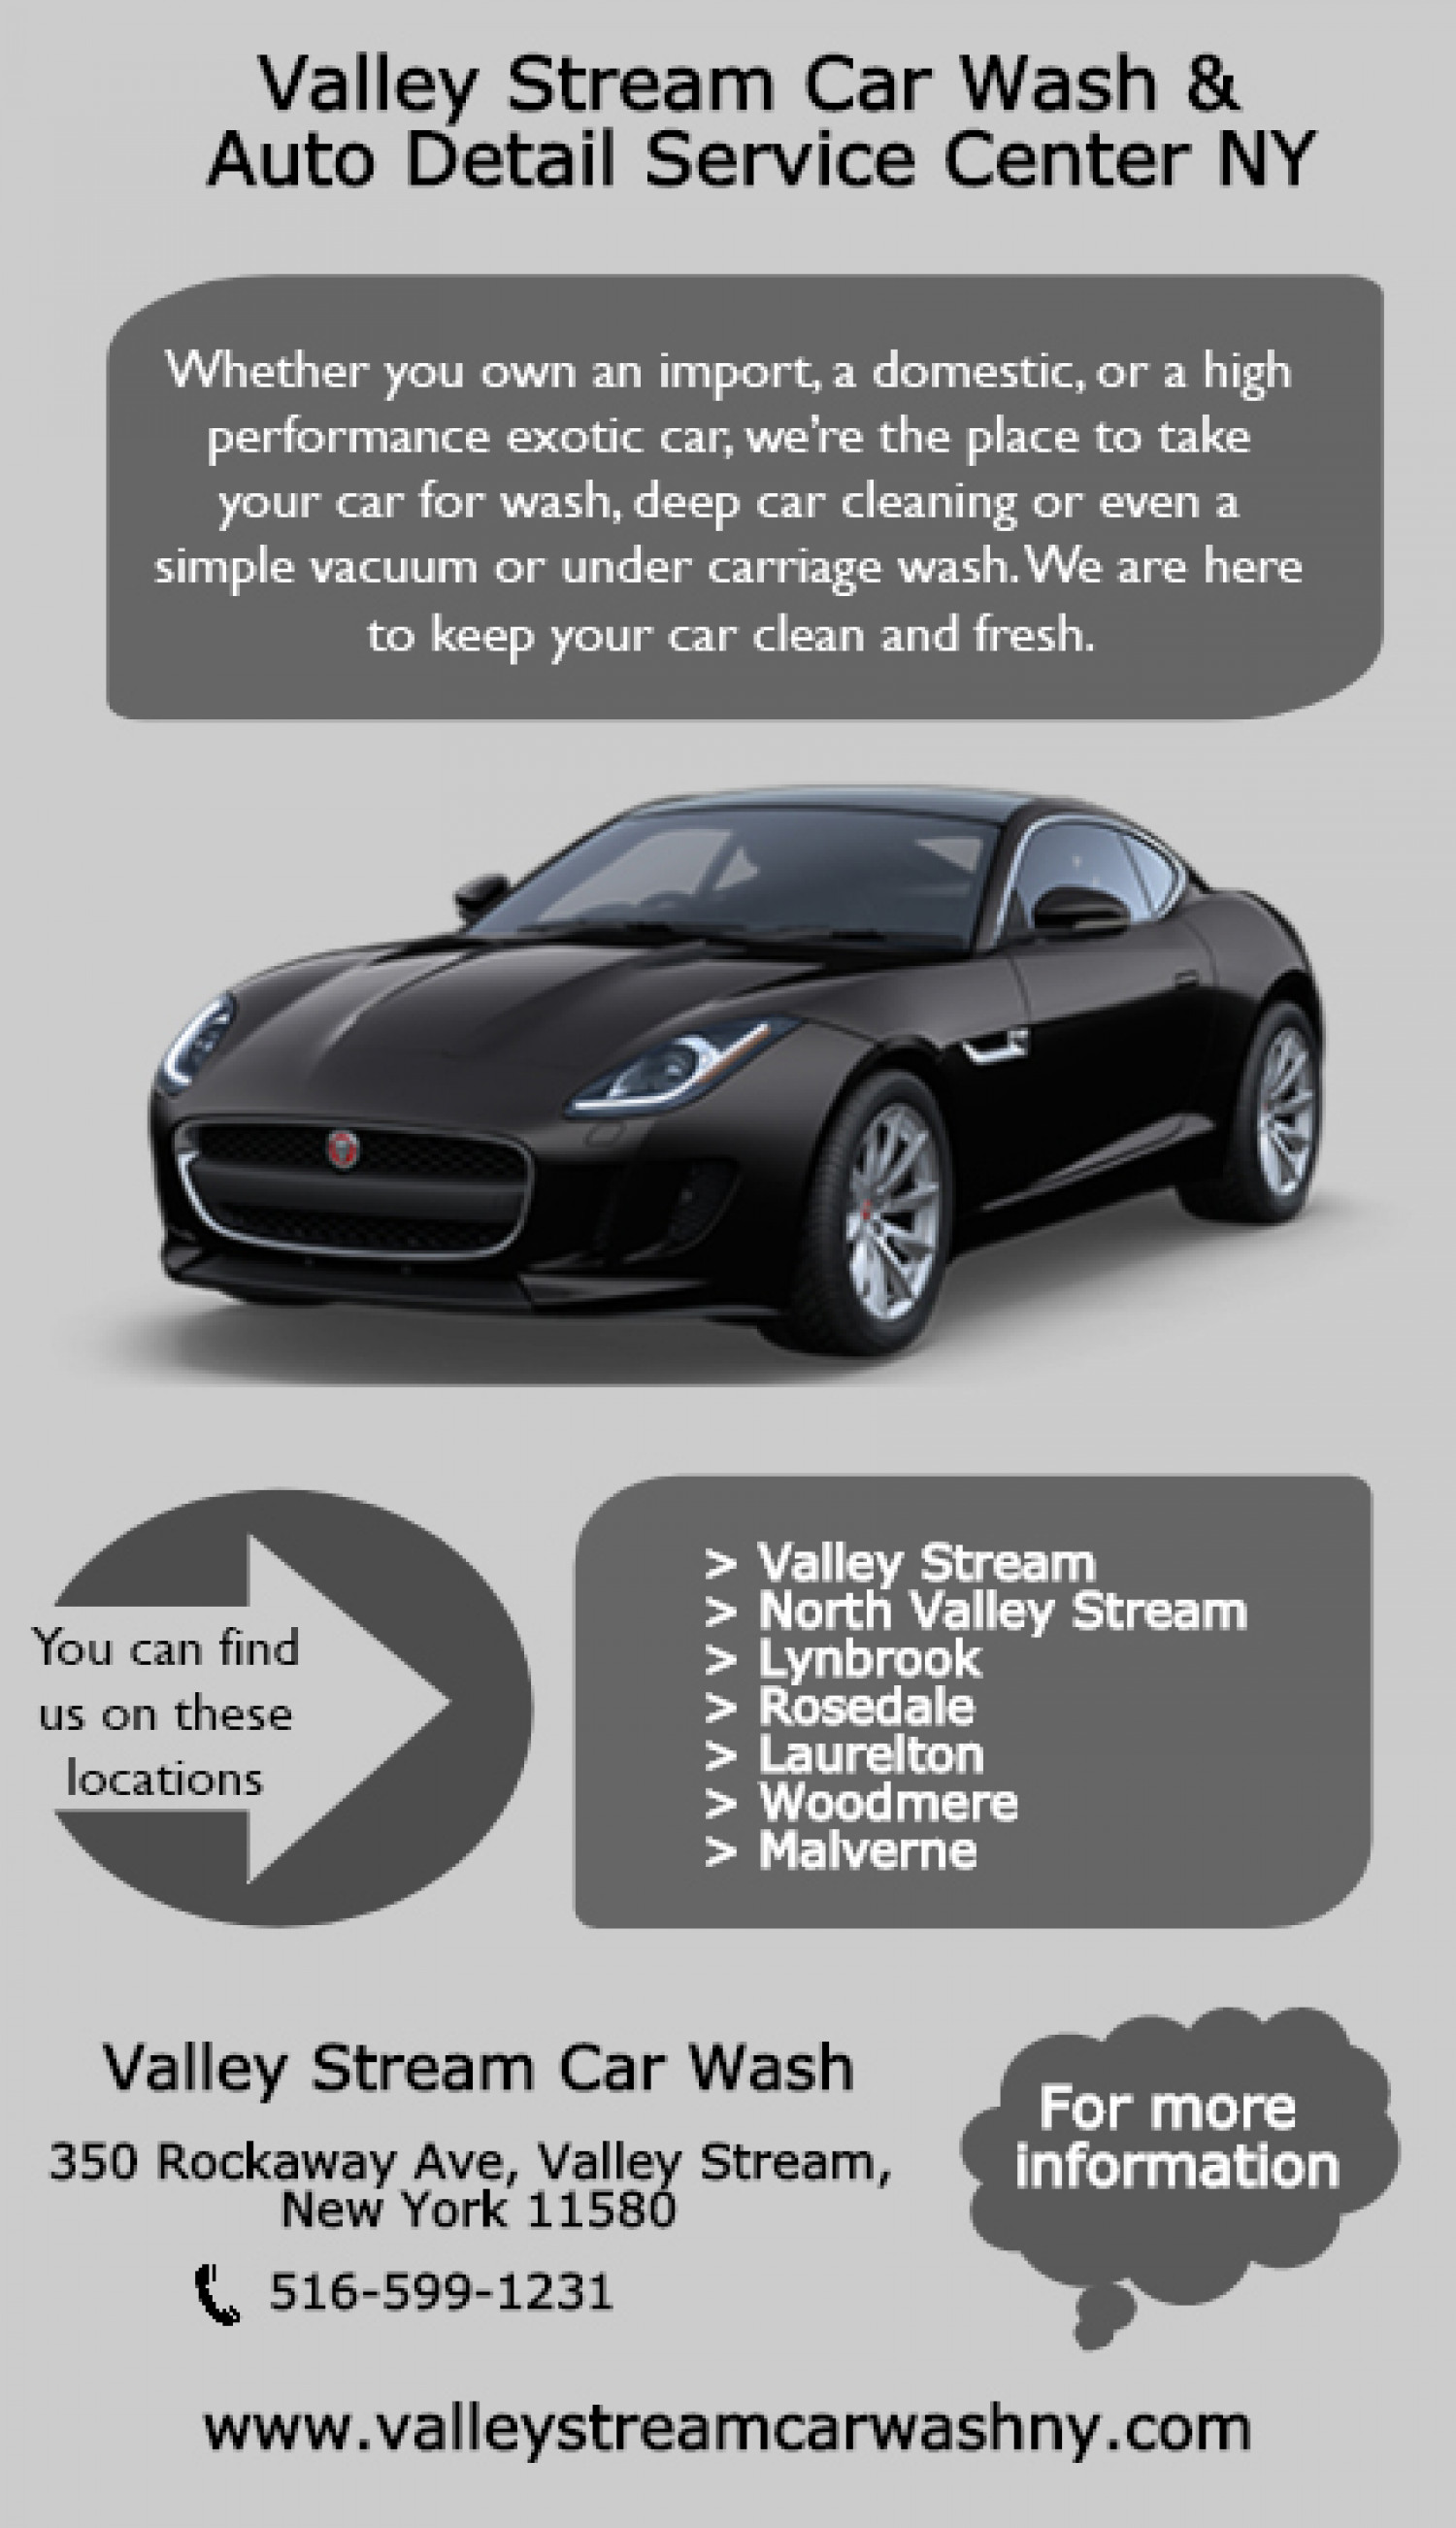 Valley Stream Car Wash & Auto Detail Service Center NY Infographic